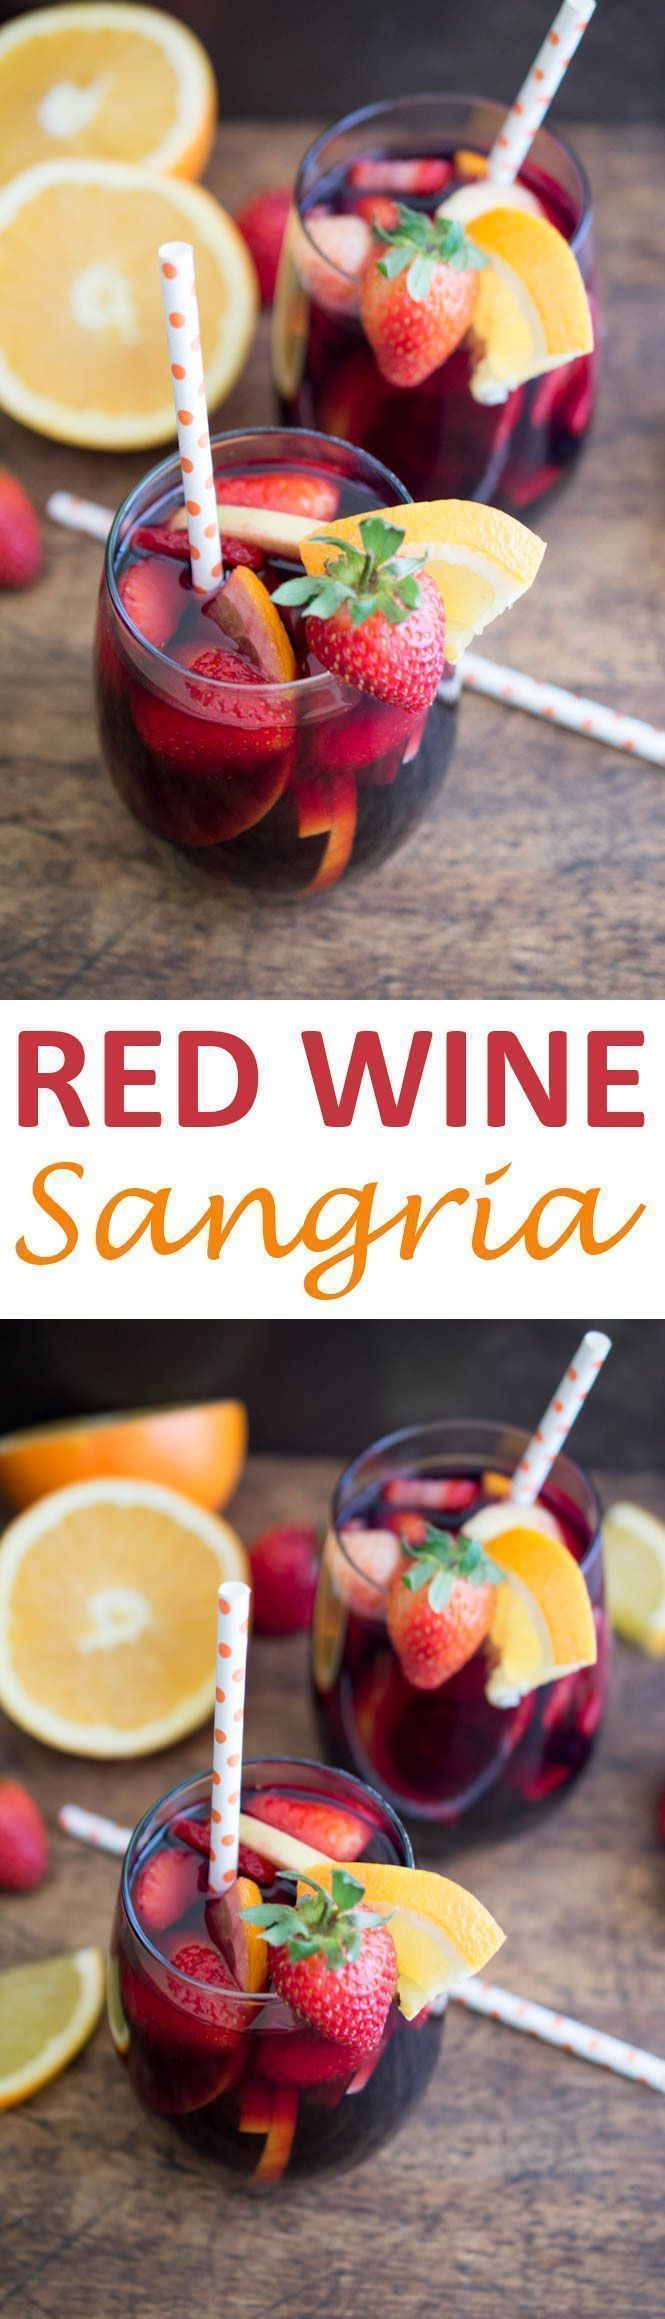 Simple and Fruity Red Wine Sangria. Made with fresh fruit, red wine, brandy and pomegranate juice. Perfect Fall or Winter cocktail. | chefsavvy.com #recipe #cocktail #drink #beverage #sangria #fruit #red #wine